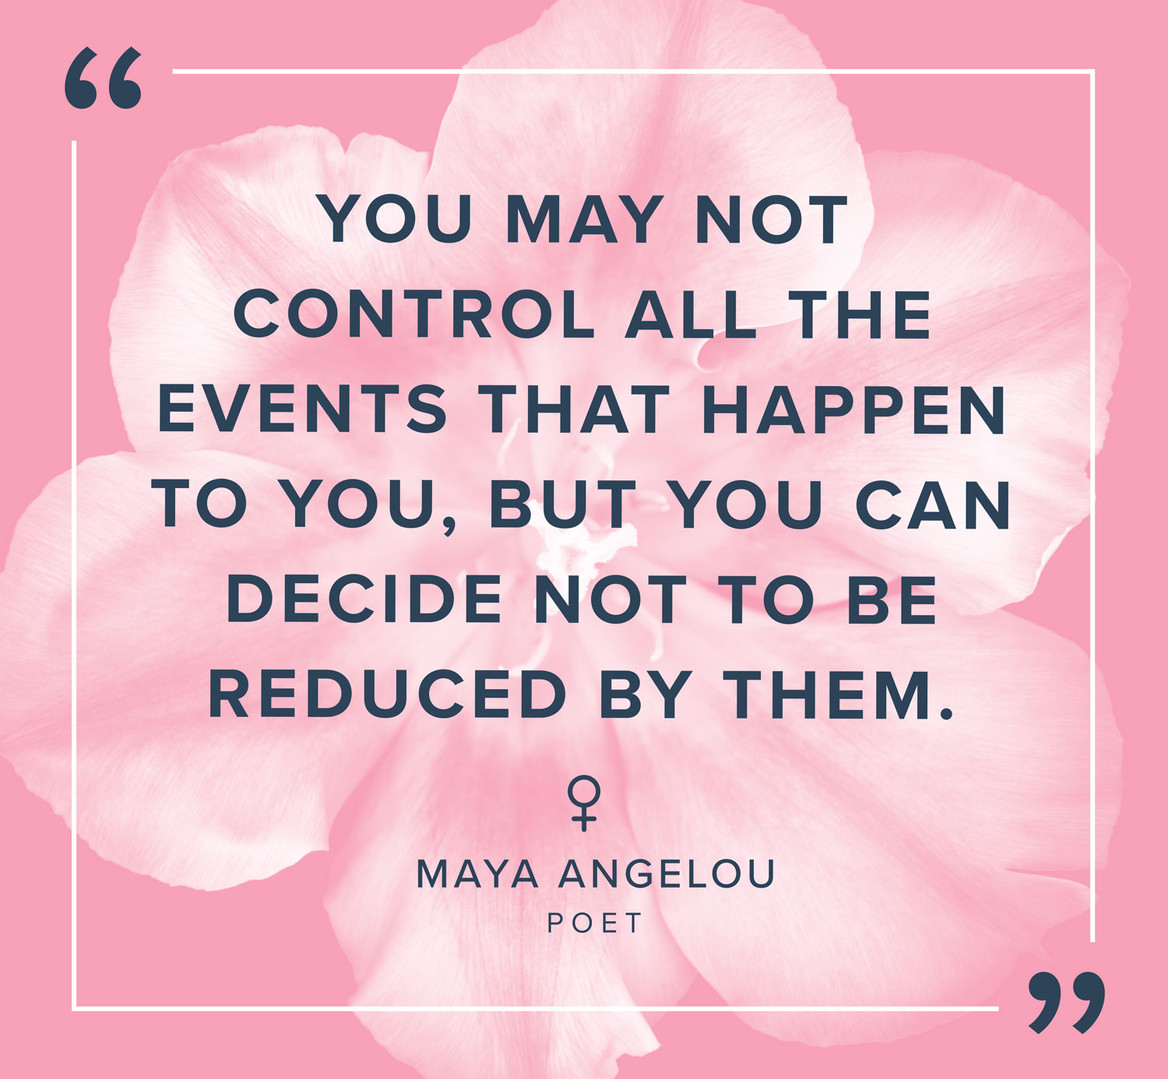 empowering-quotes-angelou.jpg